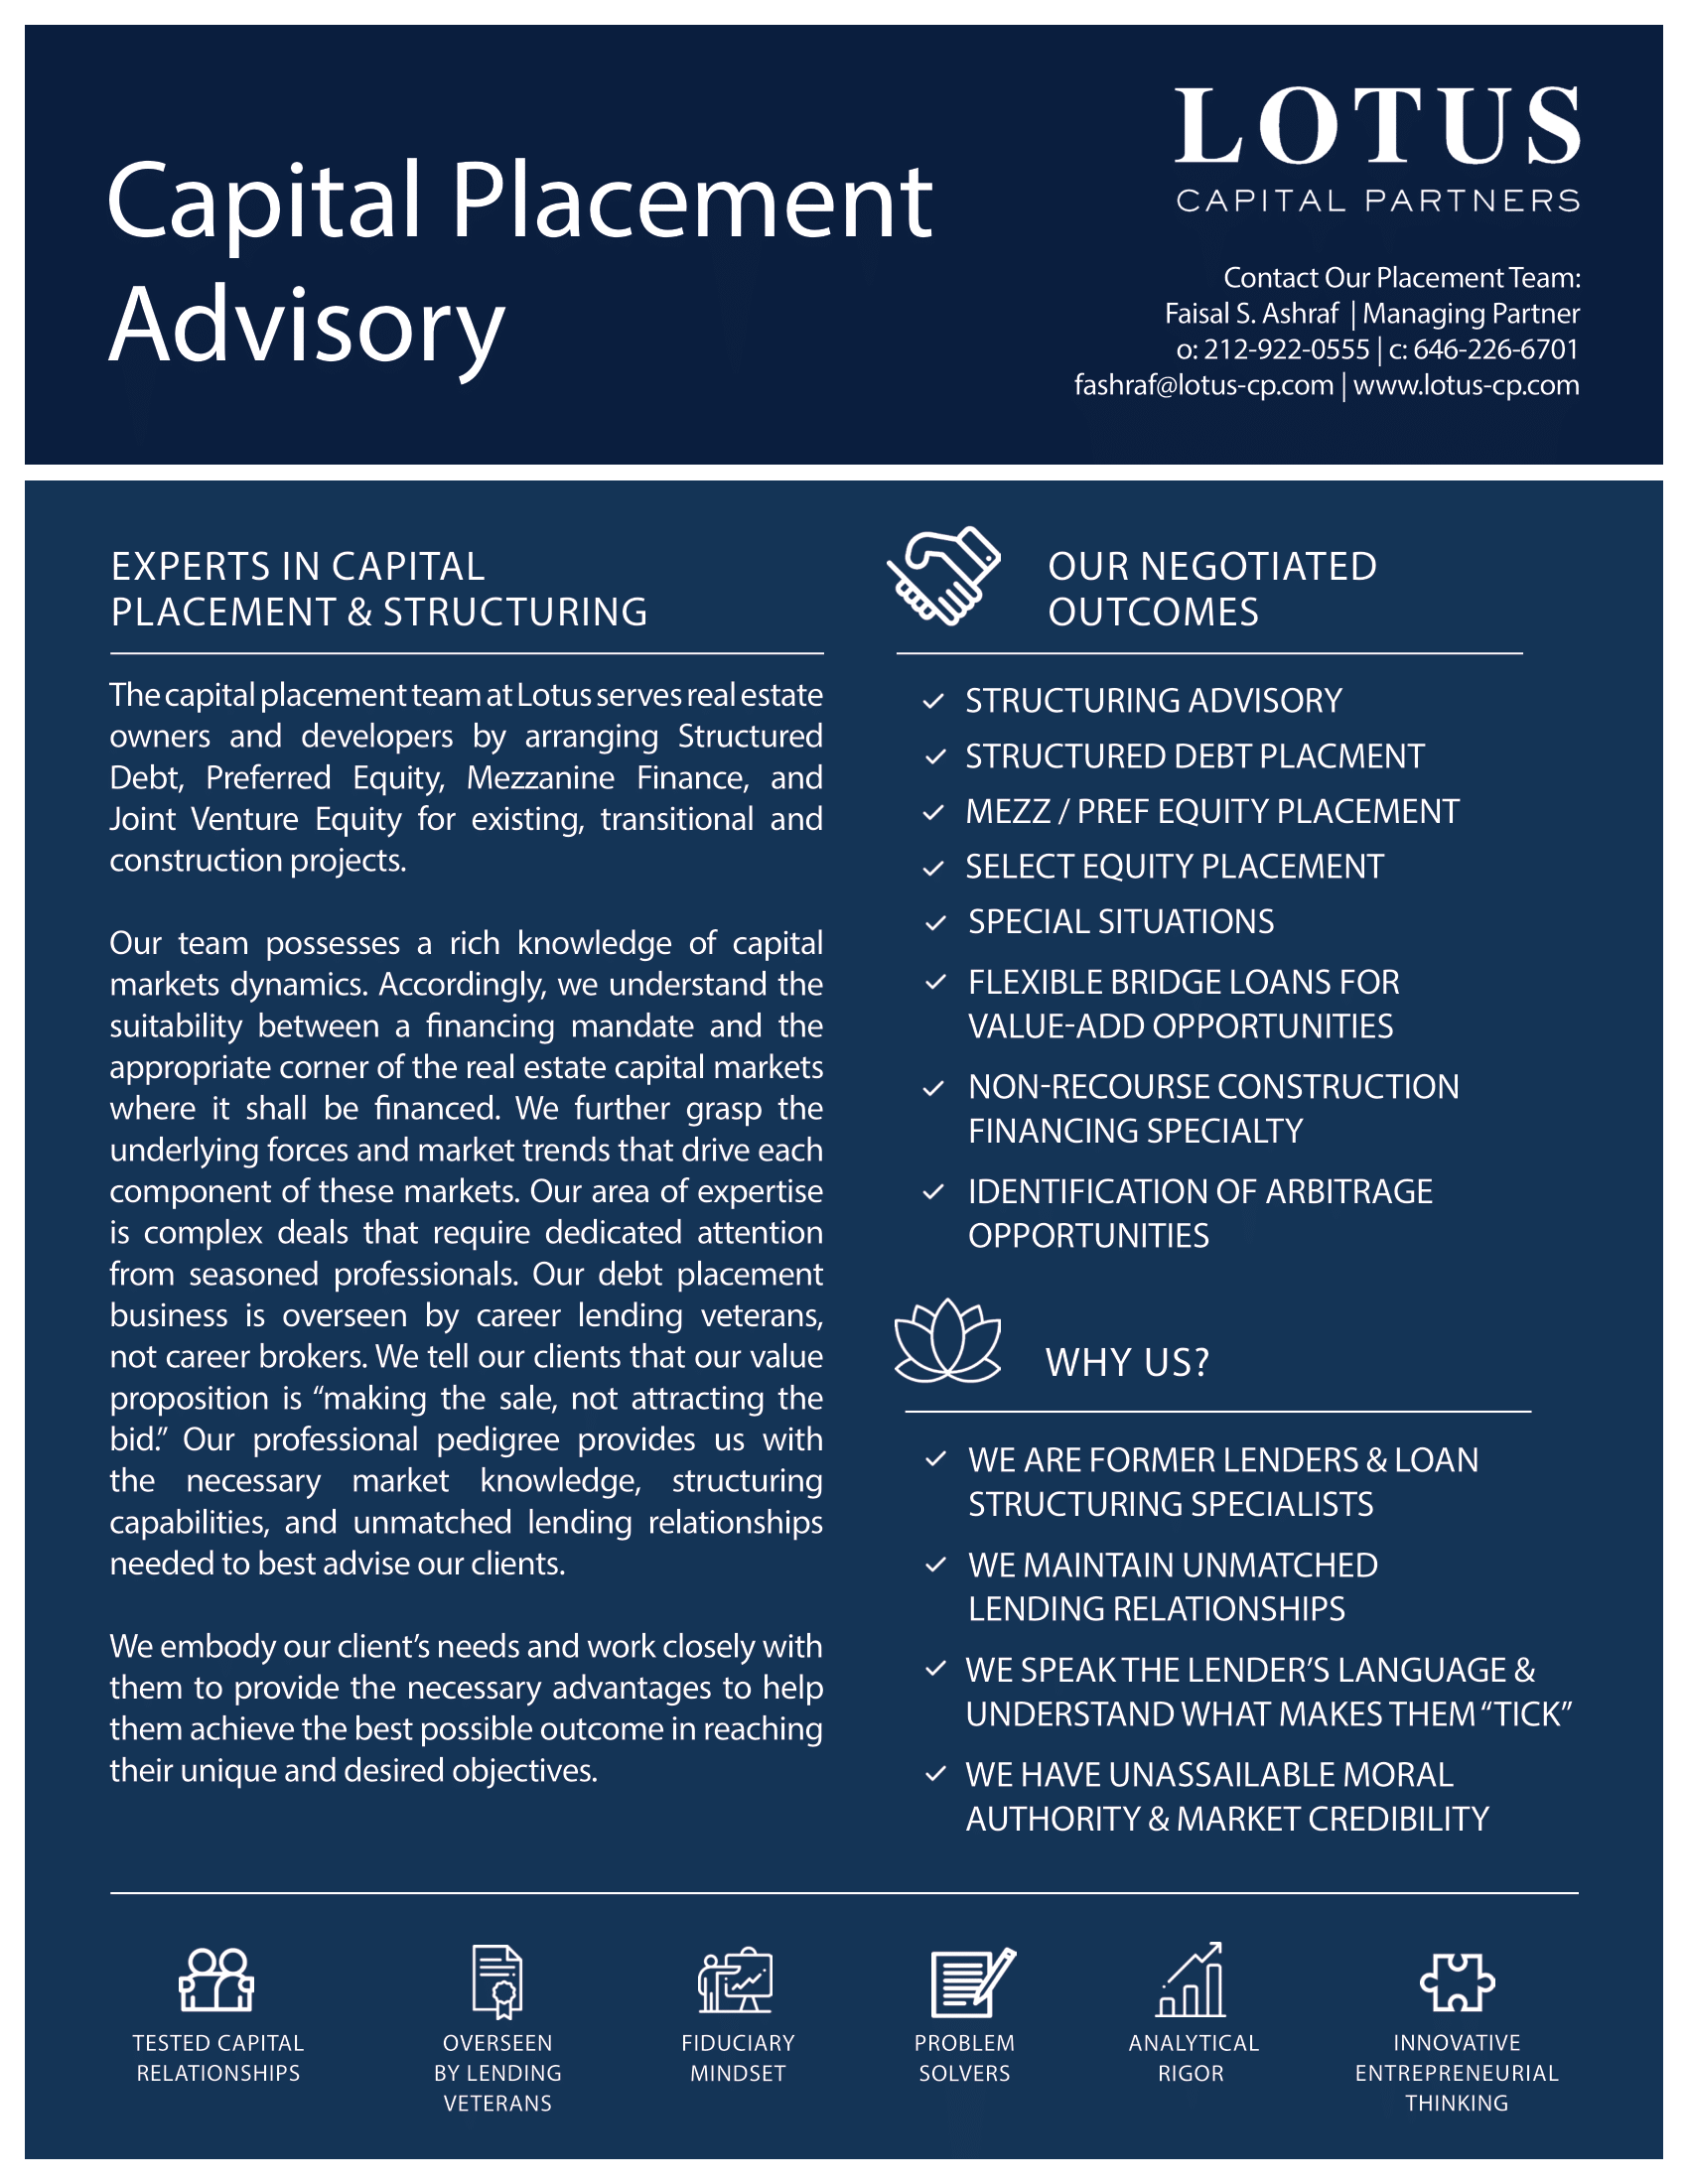 Capital Placement & Restructuring Advisory